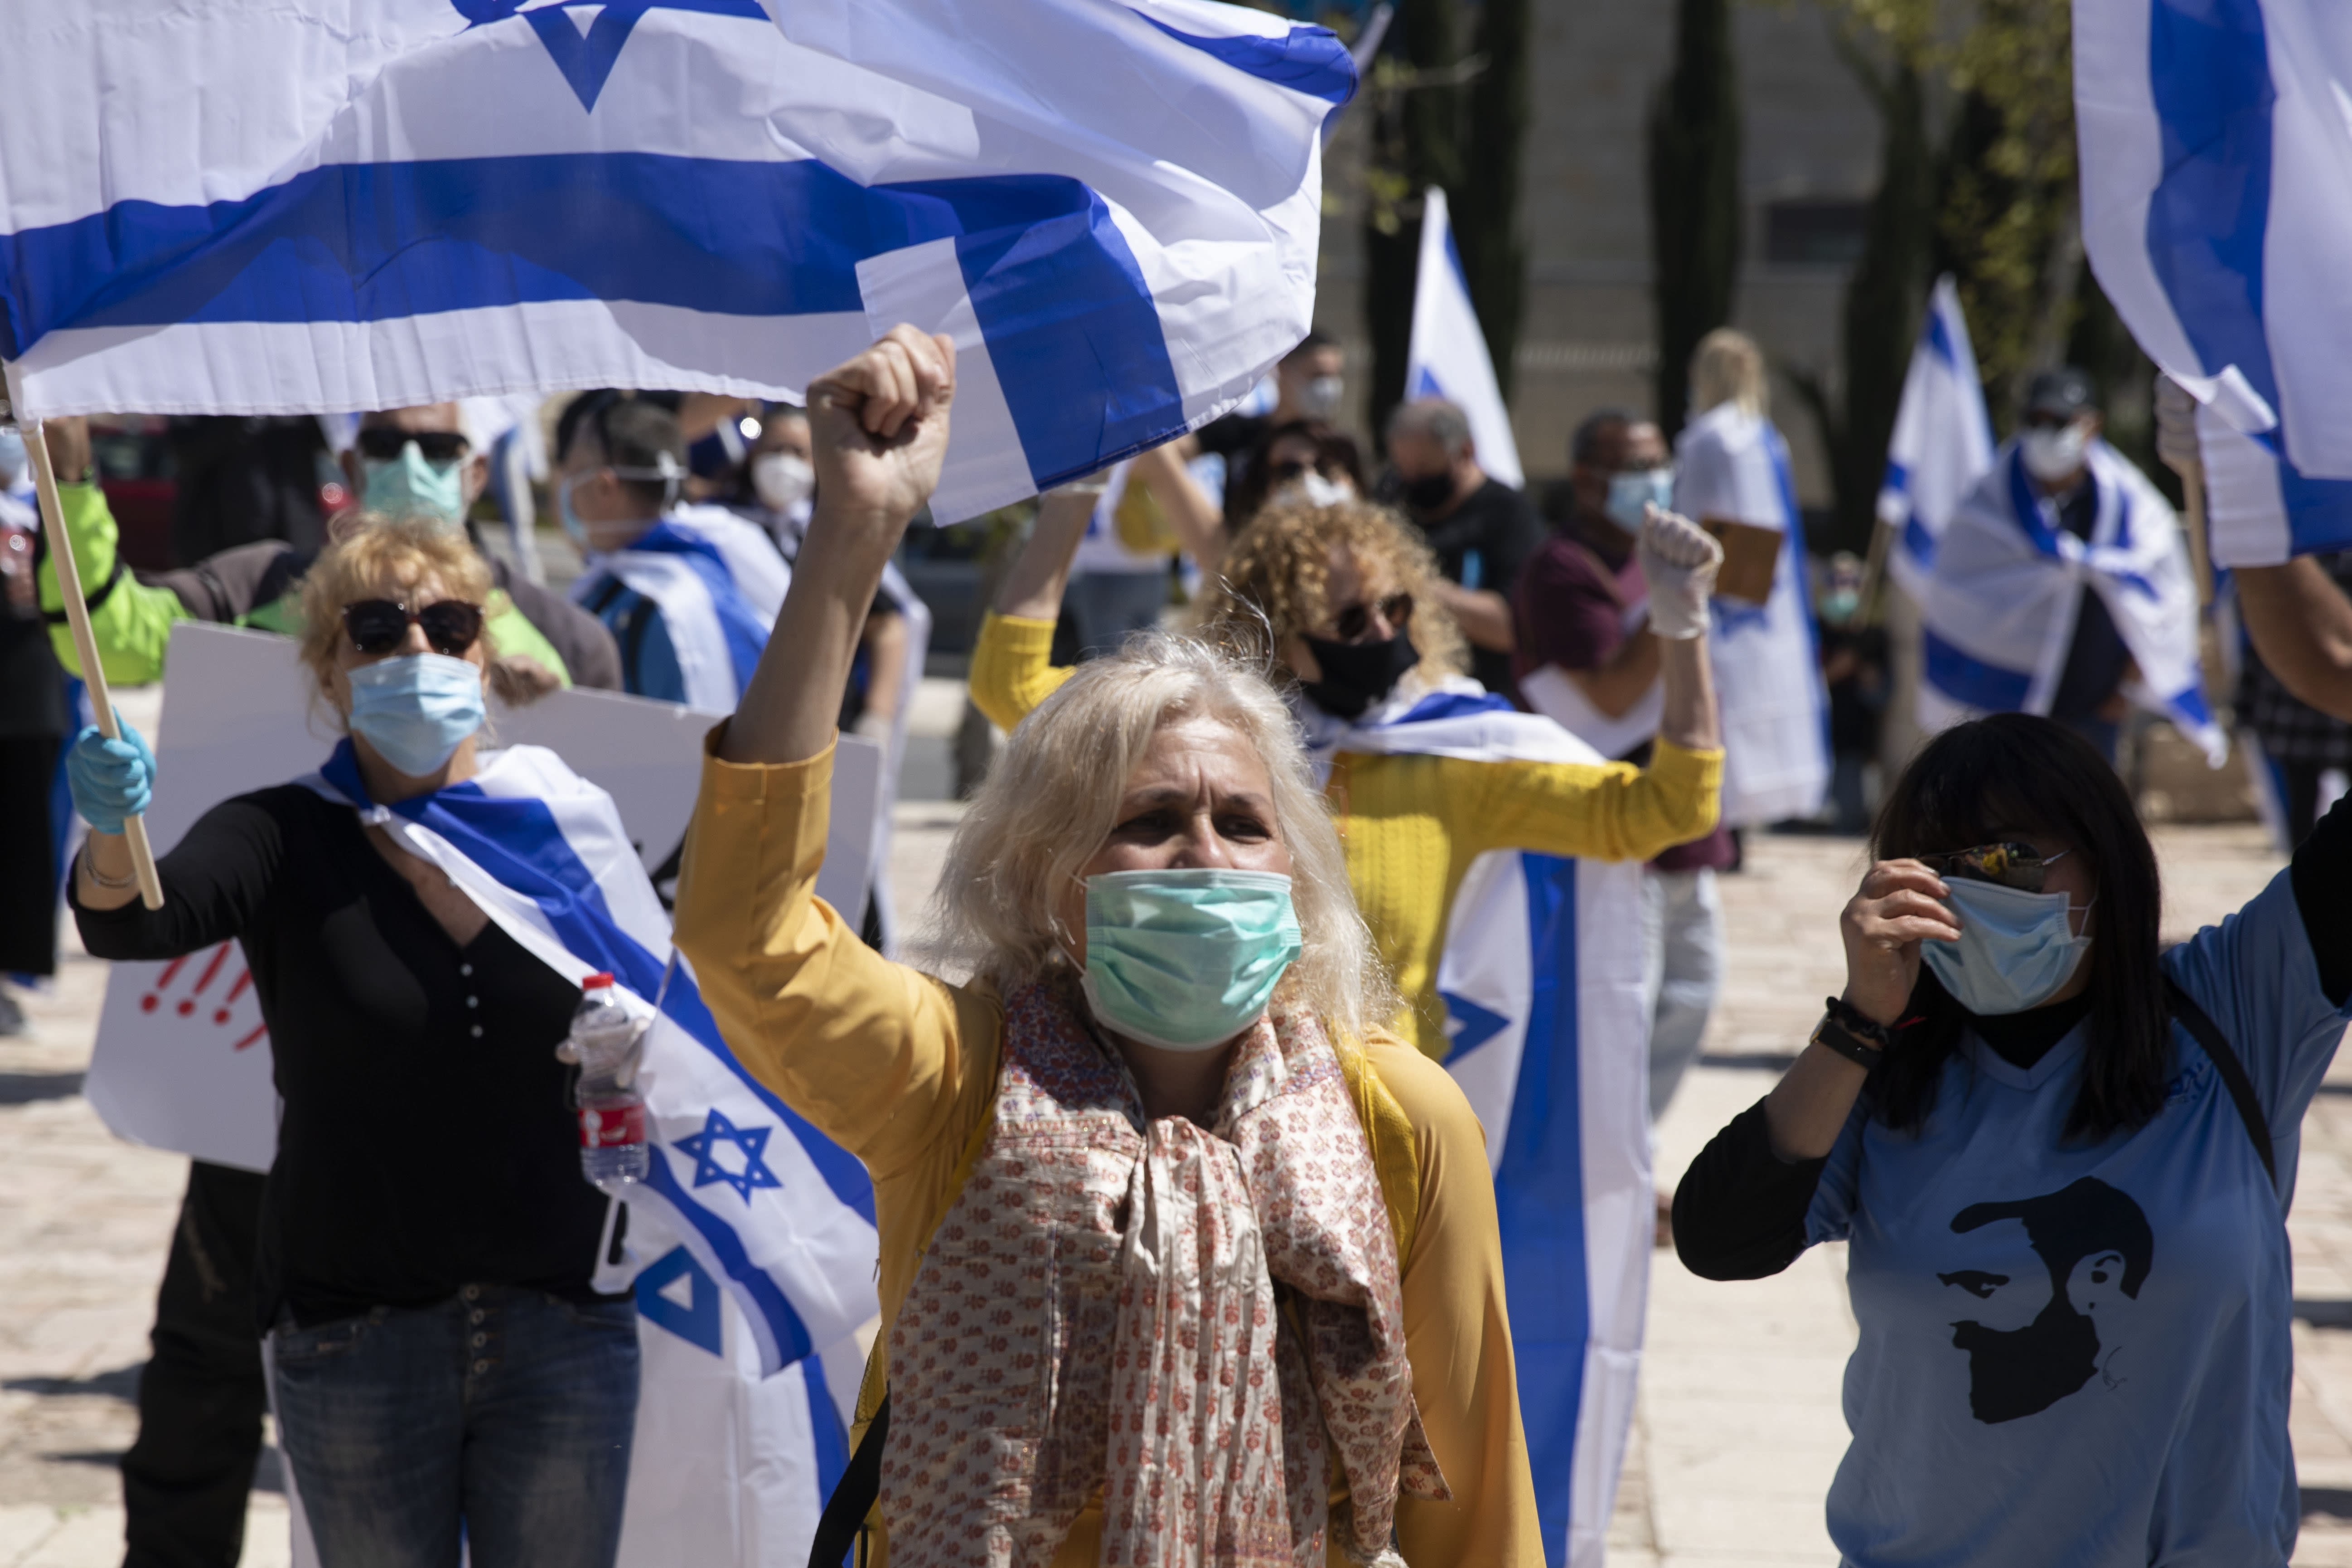 Protesters wearing masks amid concerns over the country's coronavirus outbreak hold Israeli flags and shout slogans during a protest by supporters of Prime Minister Benjamin Netanyahu in front of Israel's Supreme Court in Jerusalem, Thursday, April 30, 2020. Dozens of protesters rallied outside Israel's Supreme Court on Thursday against petitions to disqualify Benjamin Netanyahu from serving as prime minister while facing criminal indictments. (AP Photo/Ariel Schalit)